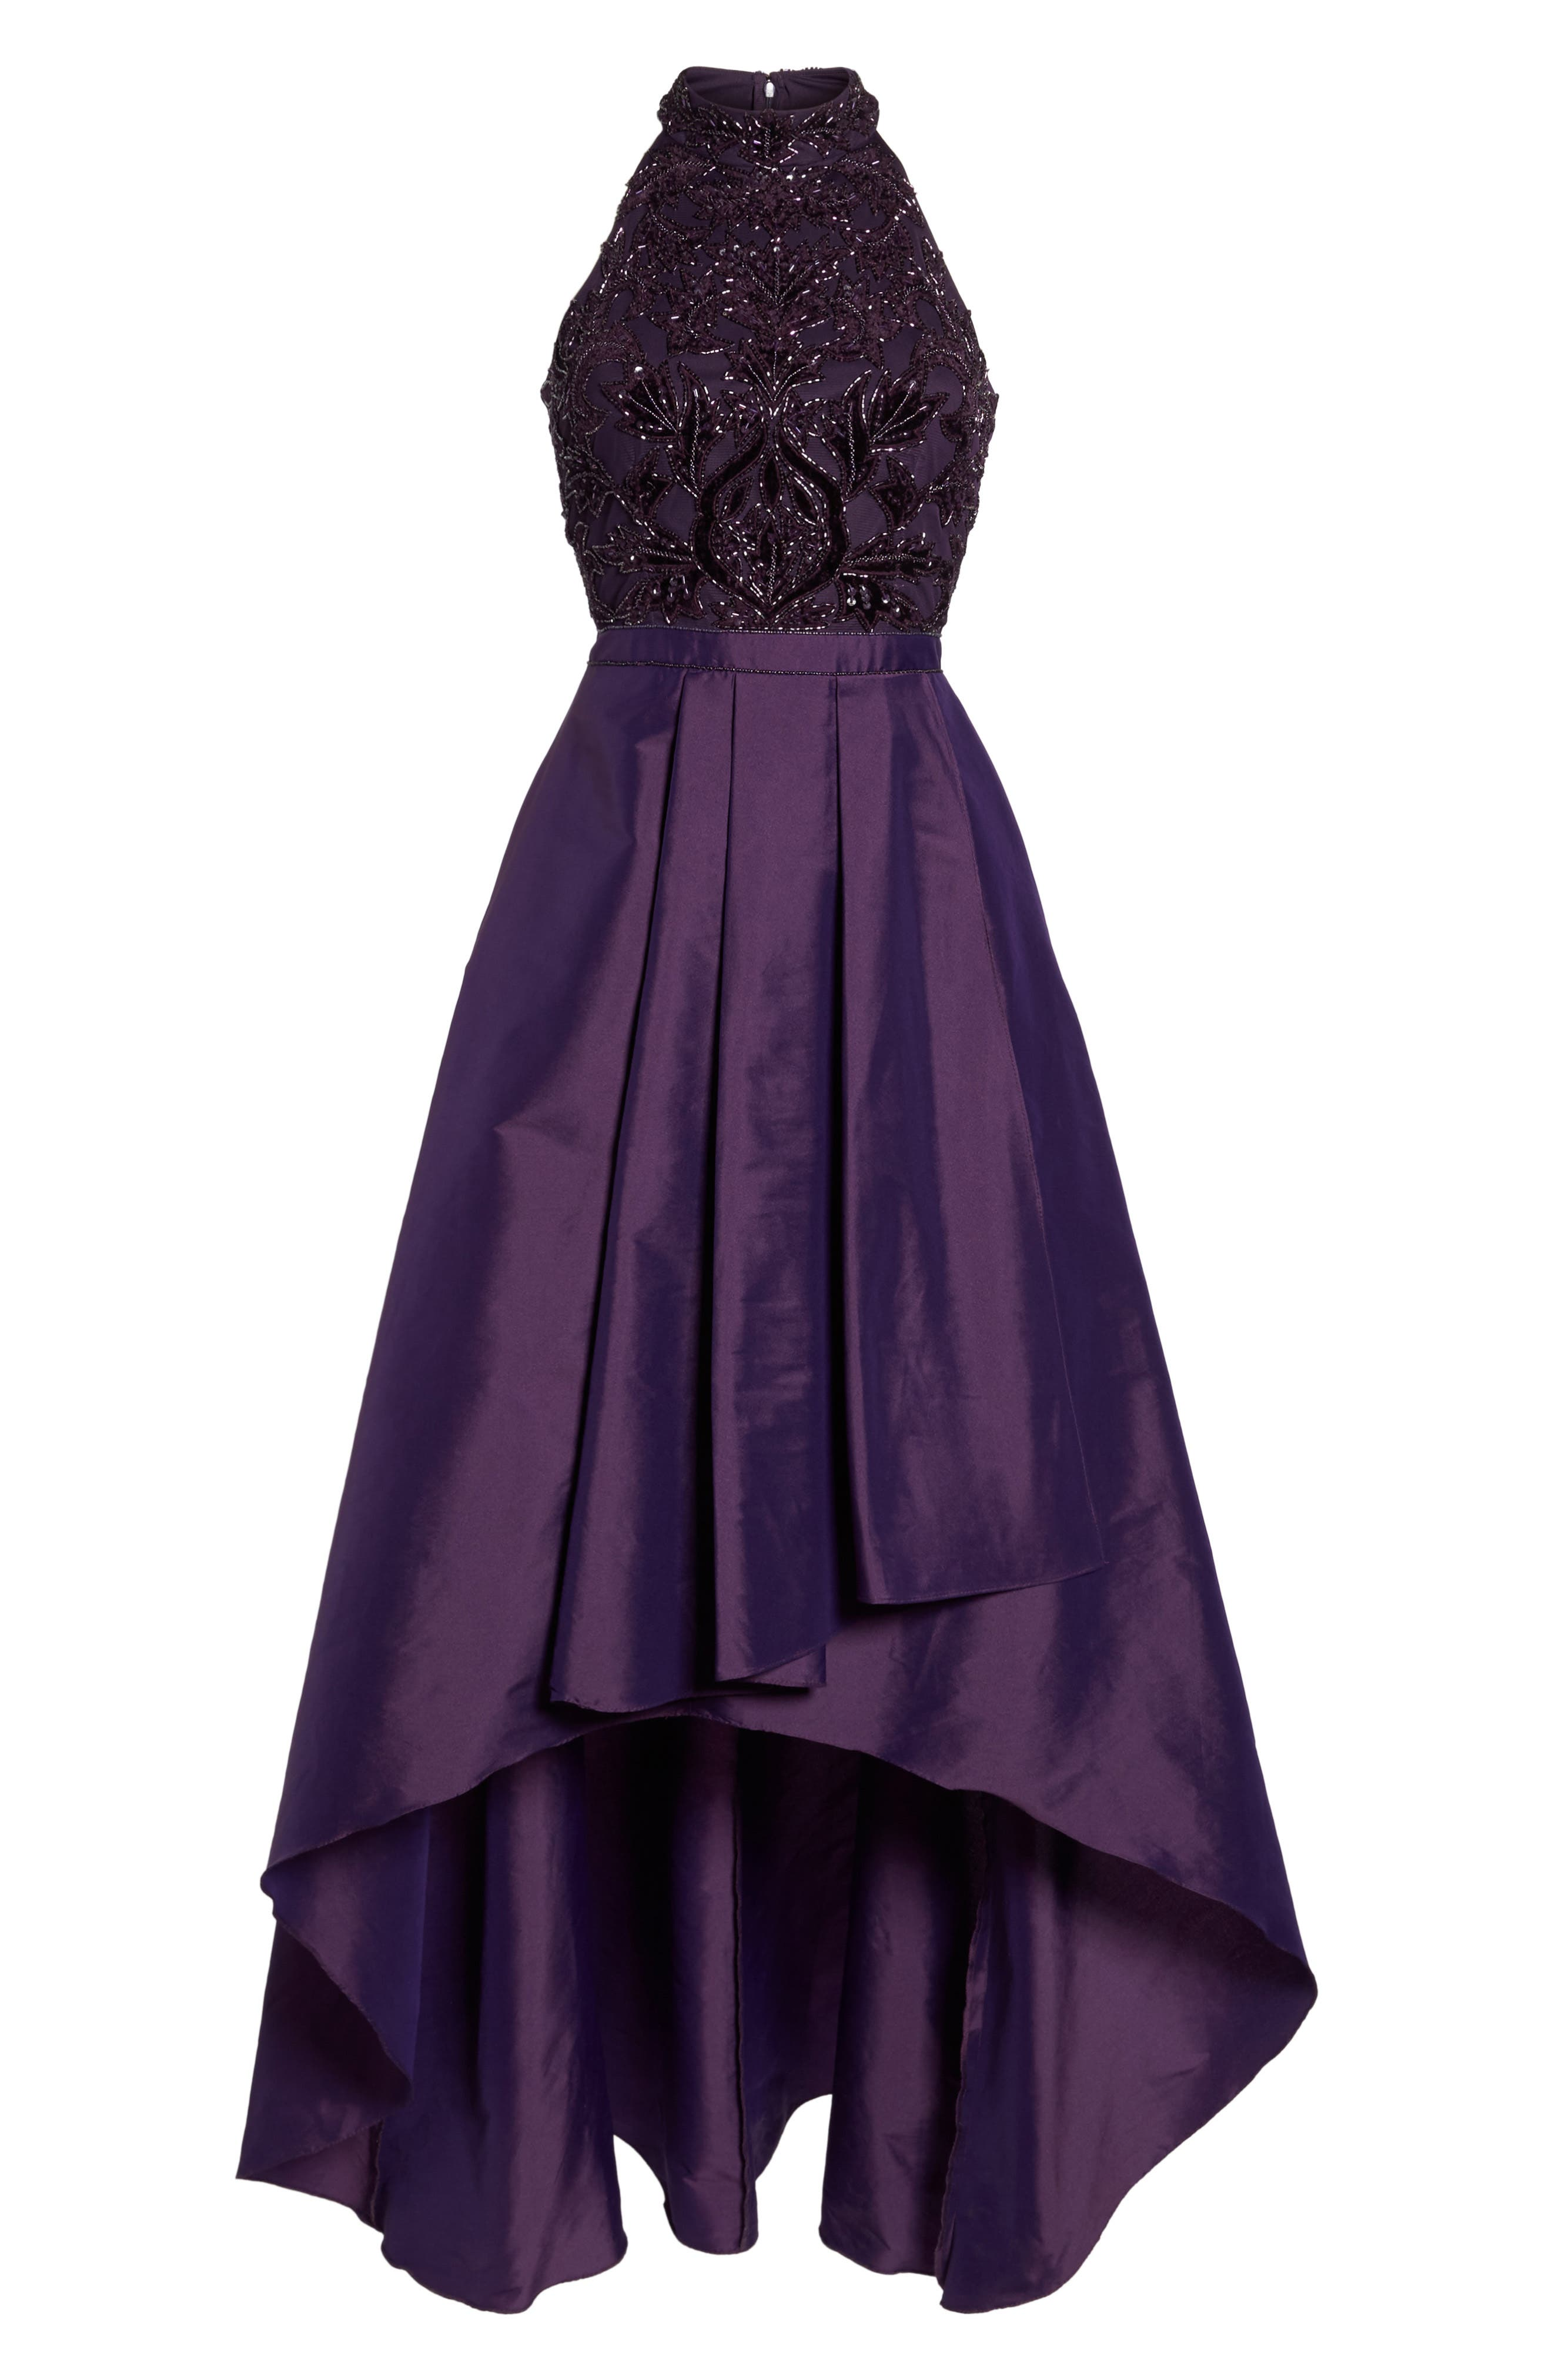 Embellished Taffeta High/Low Gown,                             Alternate thumbnail 6, color,                             501